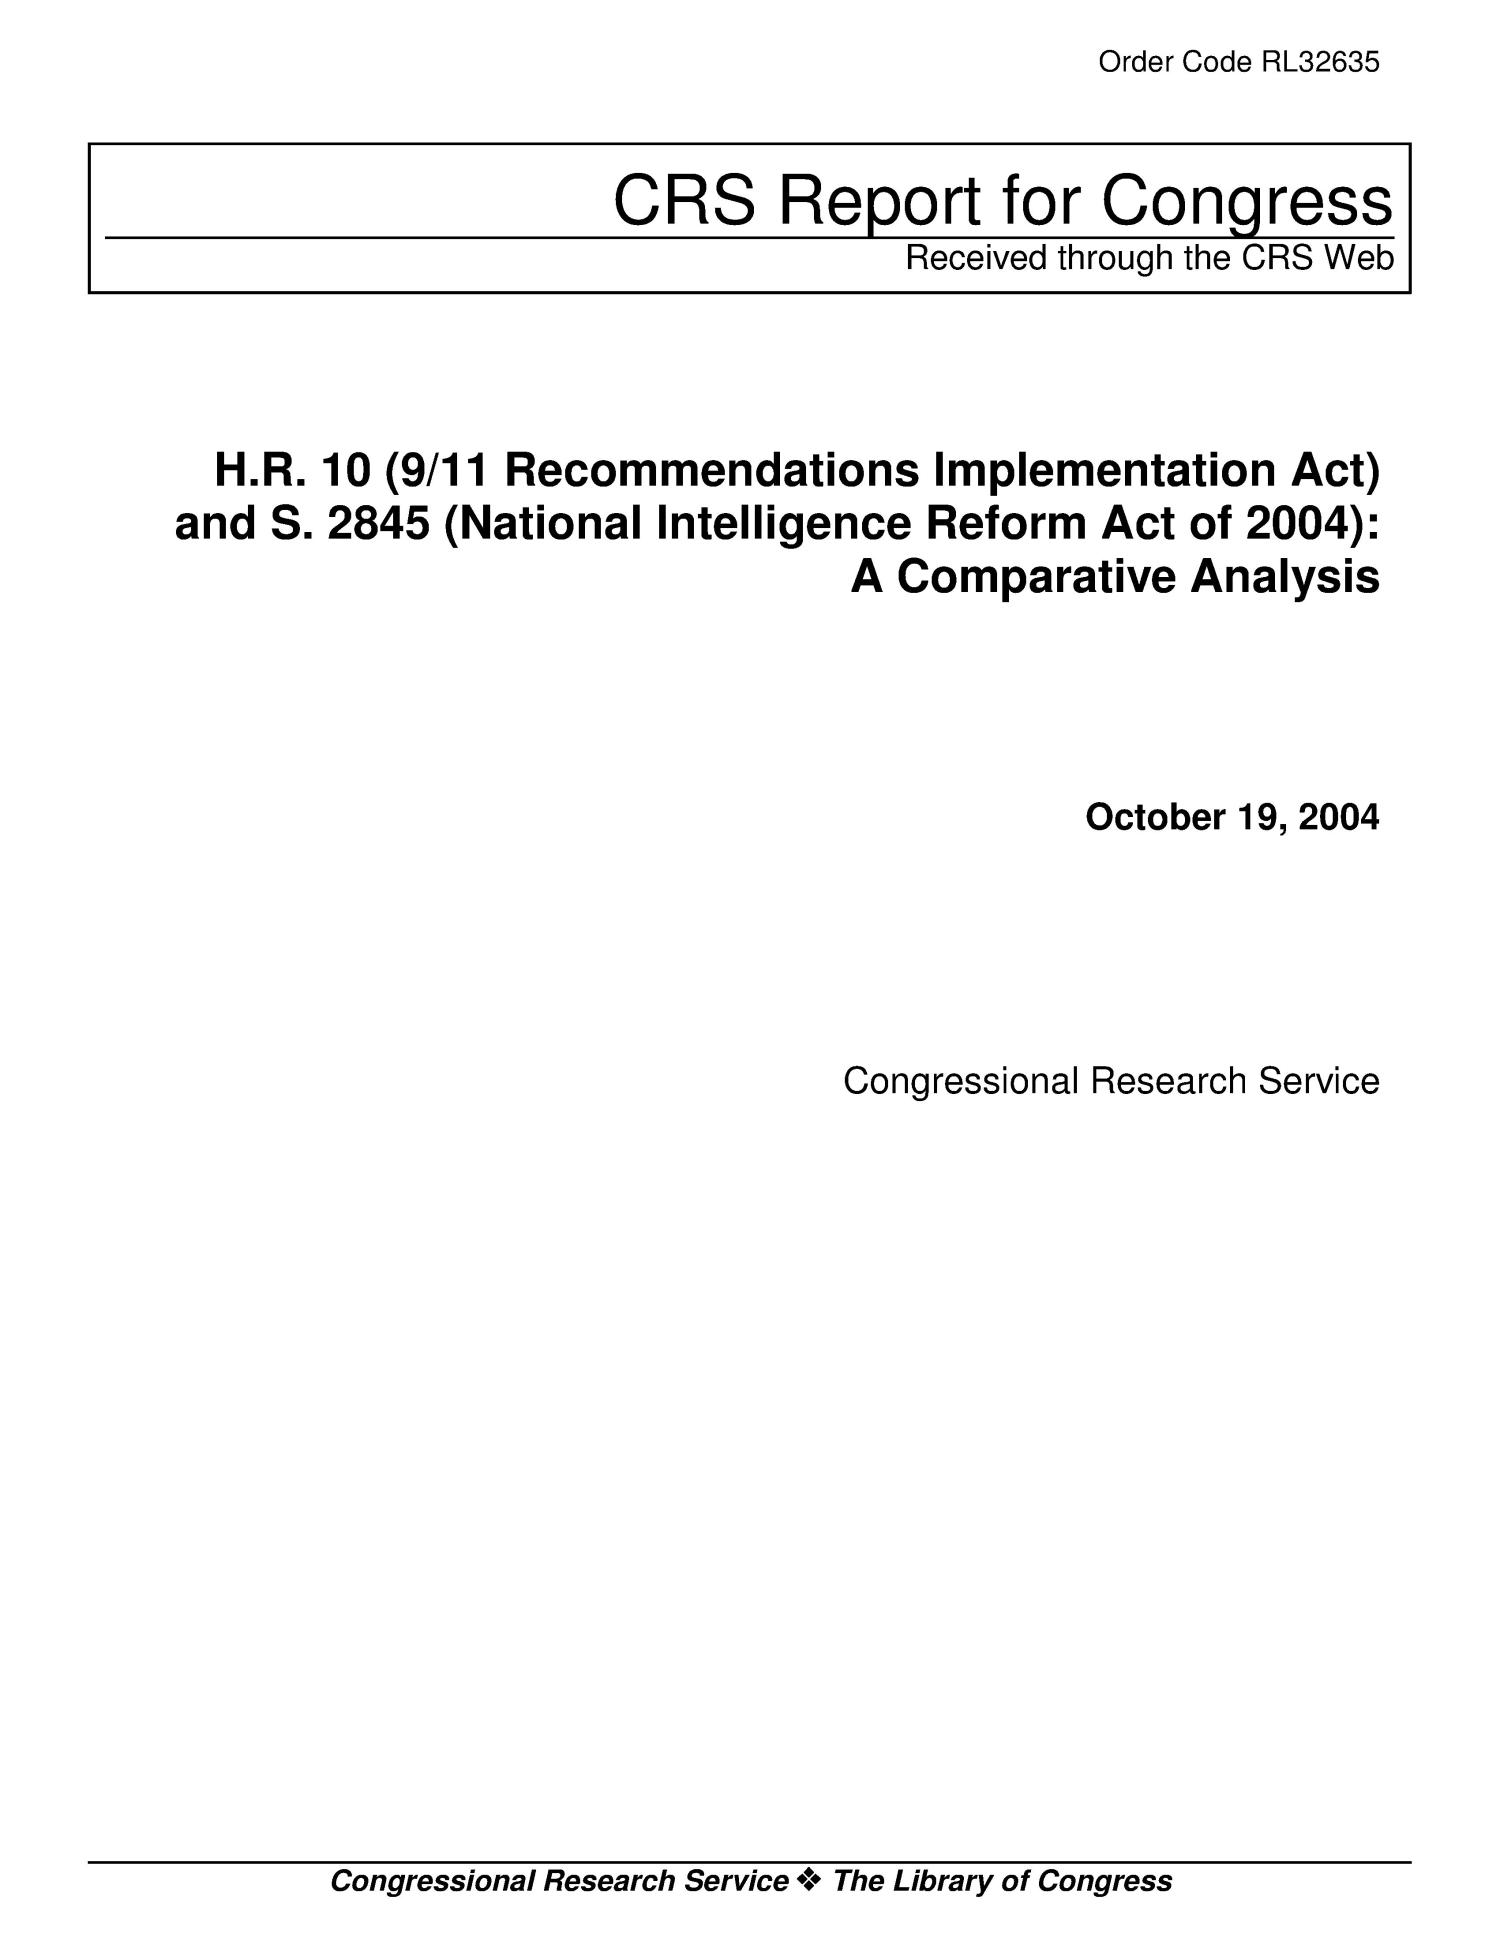 H.R. 10 (9/11 Recommendations Implementation Act) and S. 2845 (National Intelligence Reform Act of 2004): A Comparative Analysis                                                                                                      [Sequence #]: 1 of 86